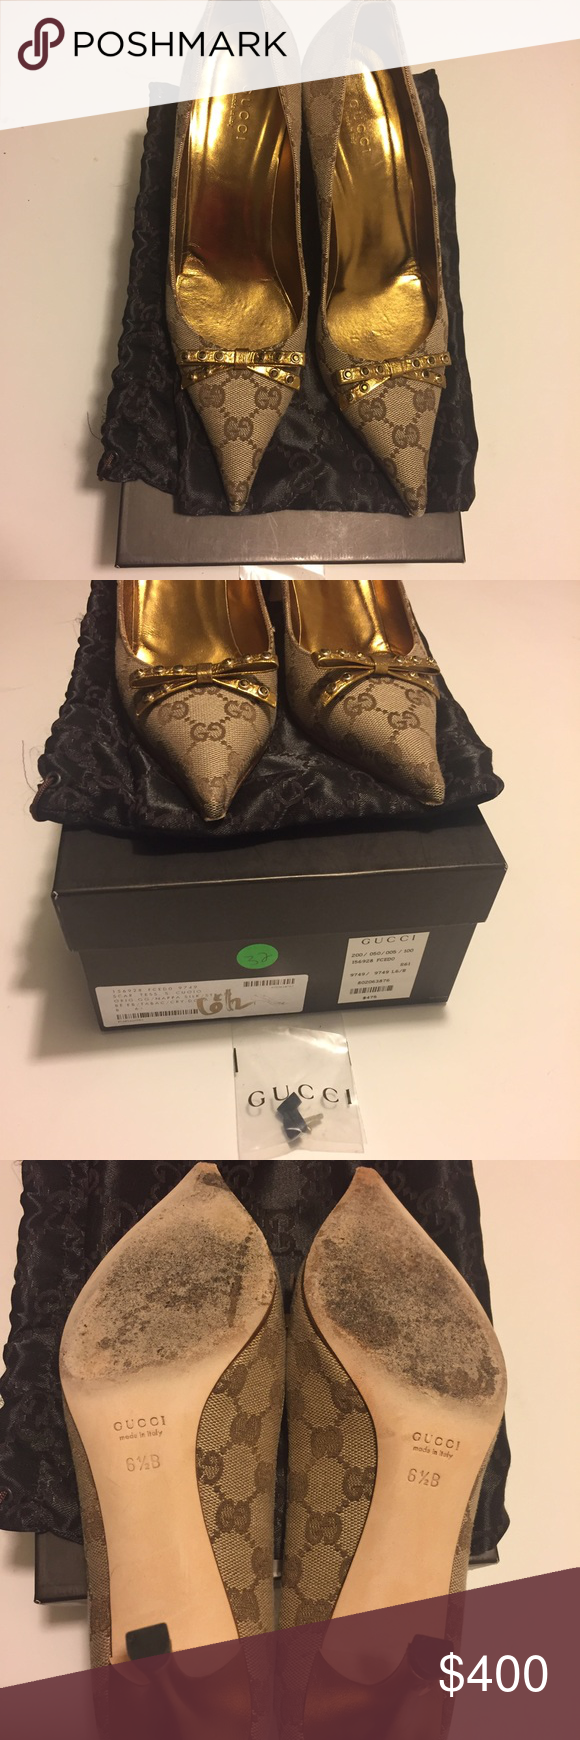 Gucci Scar Tess S Cuoio pumps Gucci Scar Tess Cuoio in original GG monogram fabric and gold napa leather wrapped heels and bow. Excellent preowned condition, comes with extra heel tap from Gucci, original dust bag and box. Gucci Shoes Heels